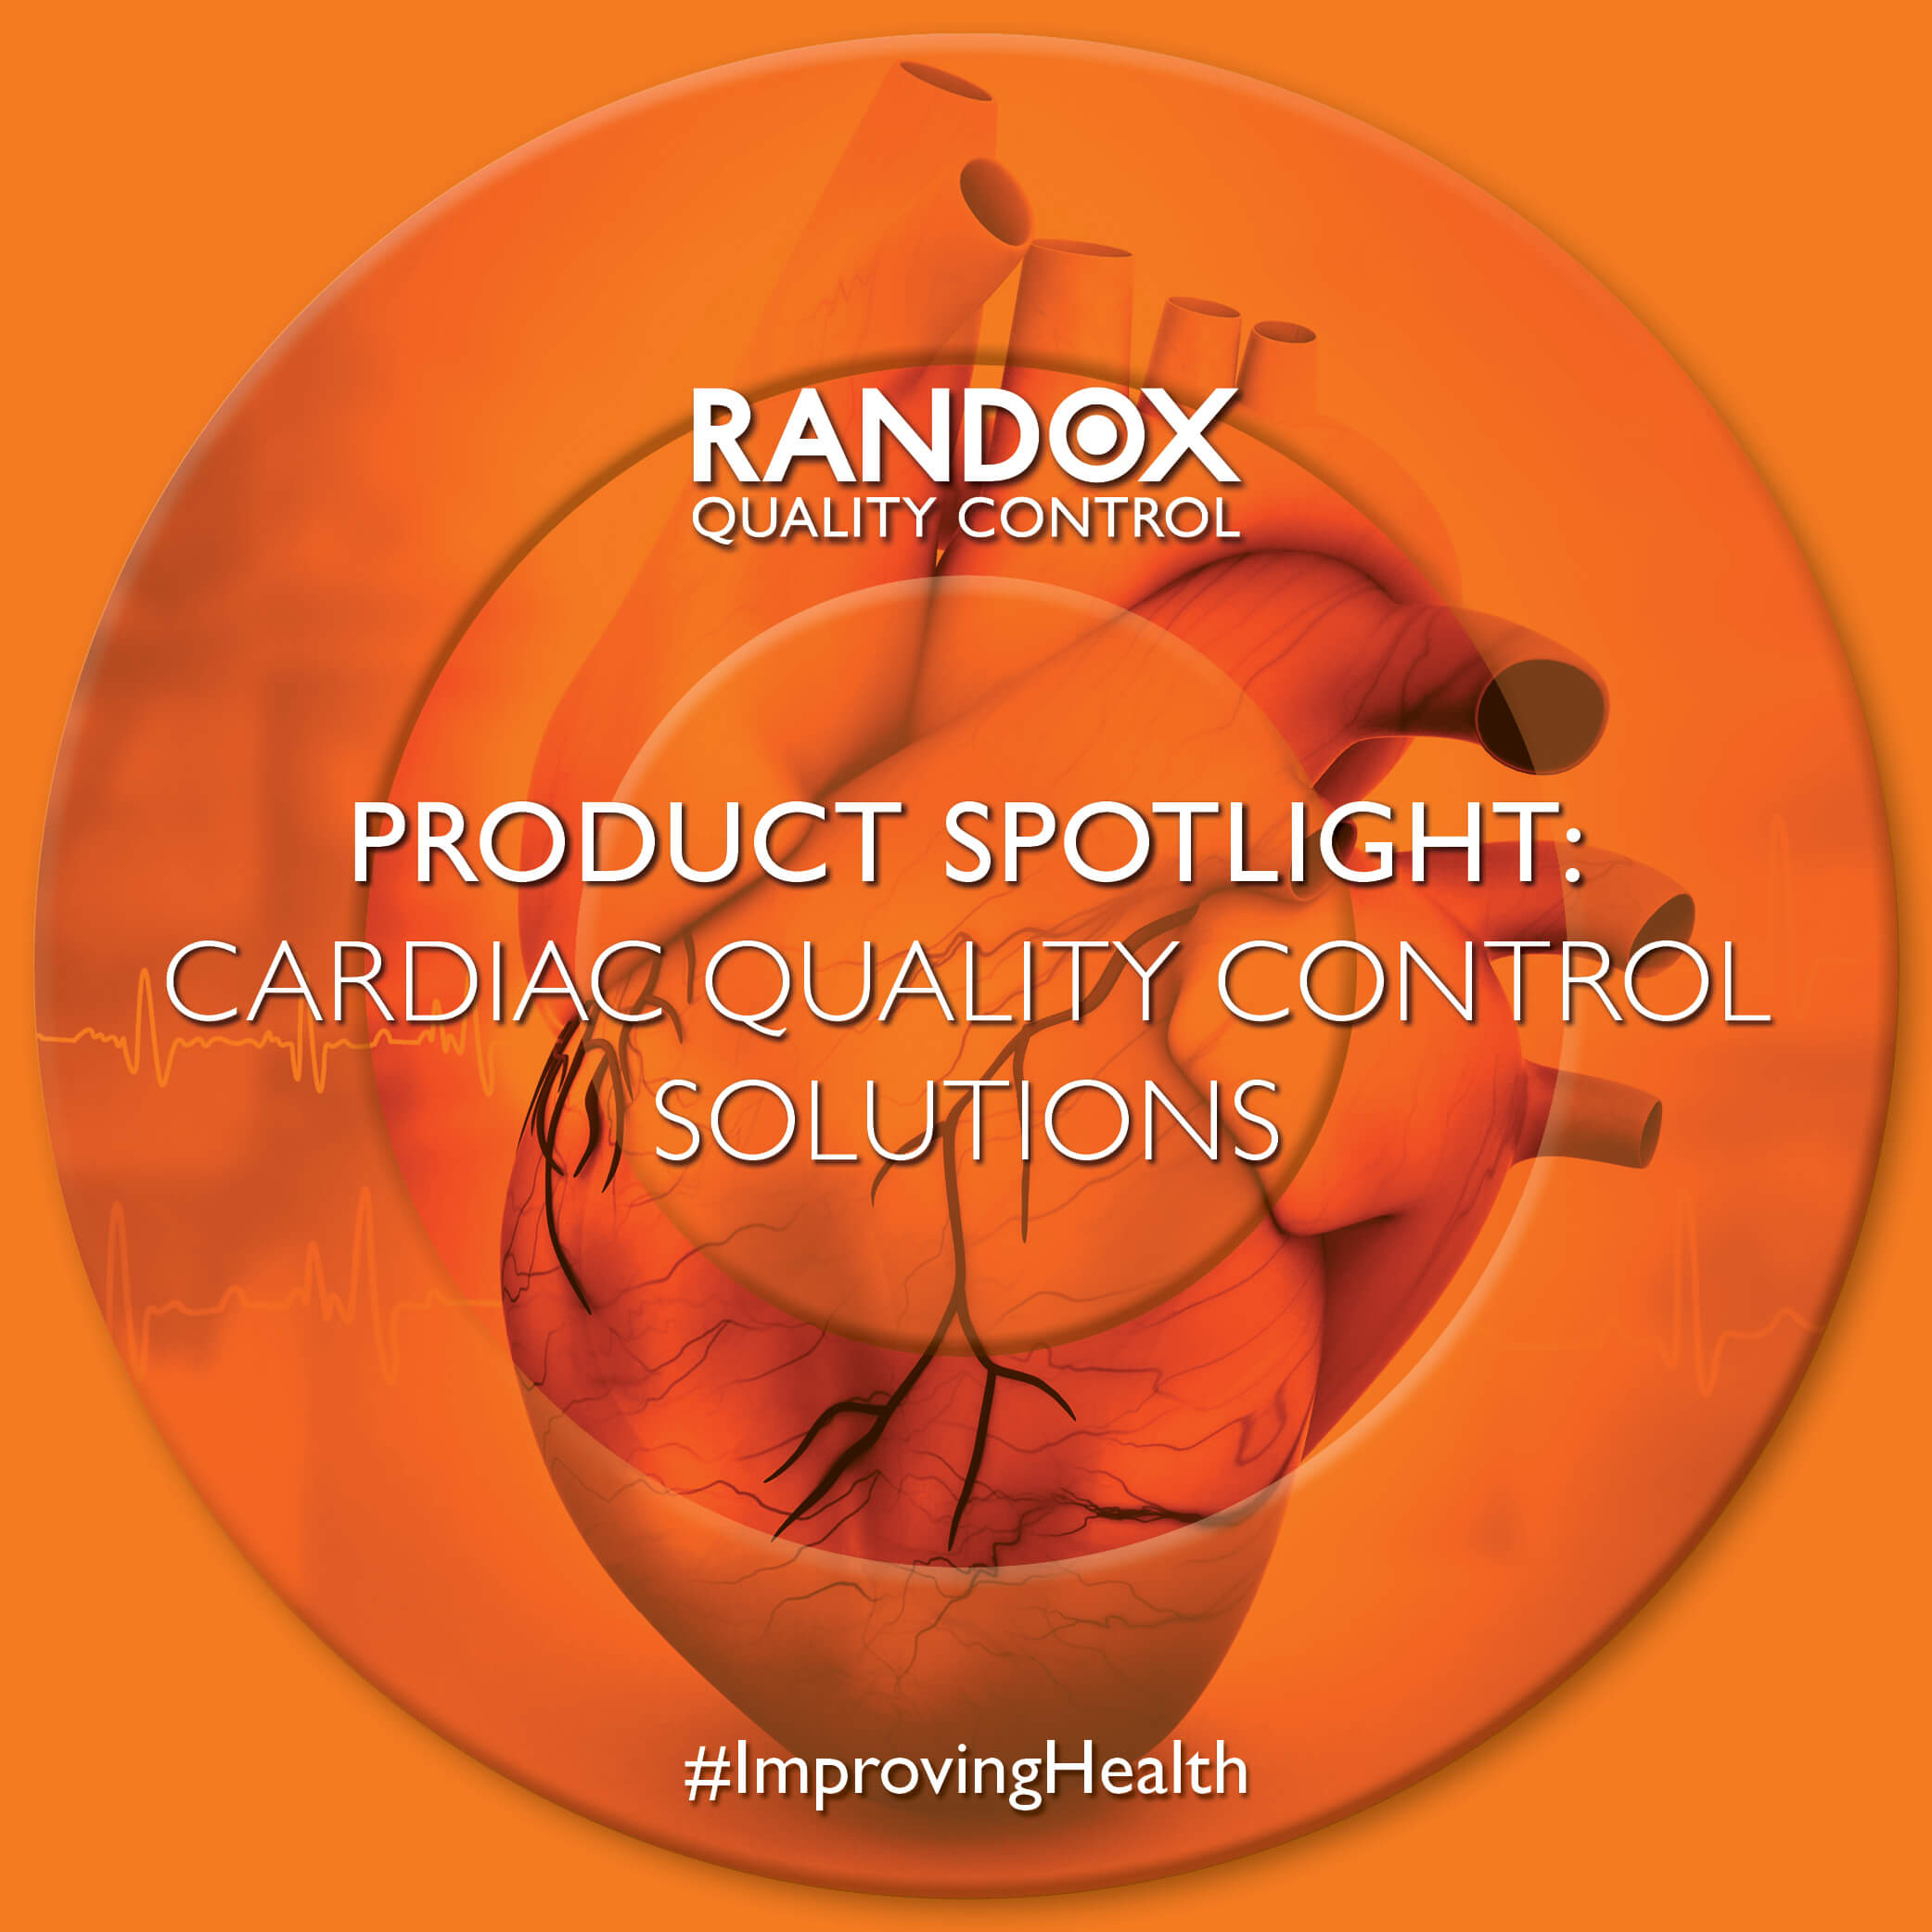 Product spotlight - Cardiac Quality Control Solutions